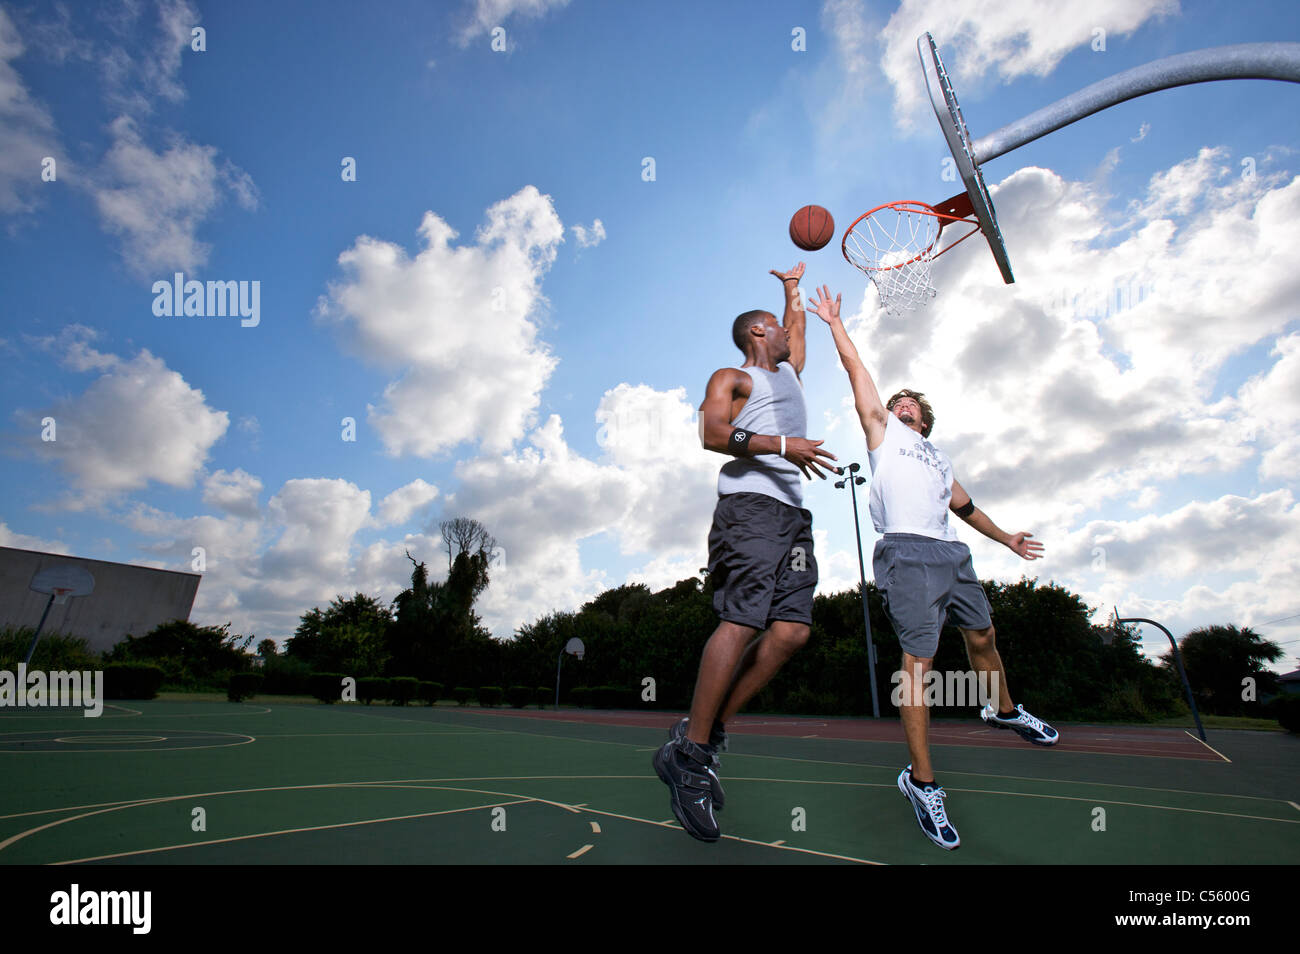 male scoring during outdoor basketball game of two on two - Stock Image